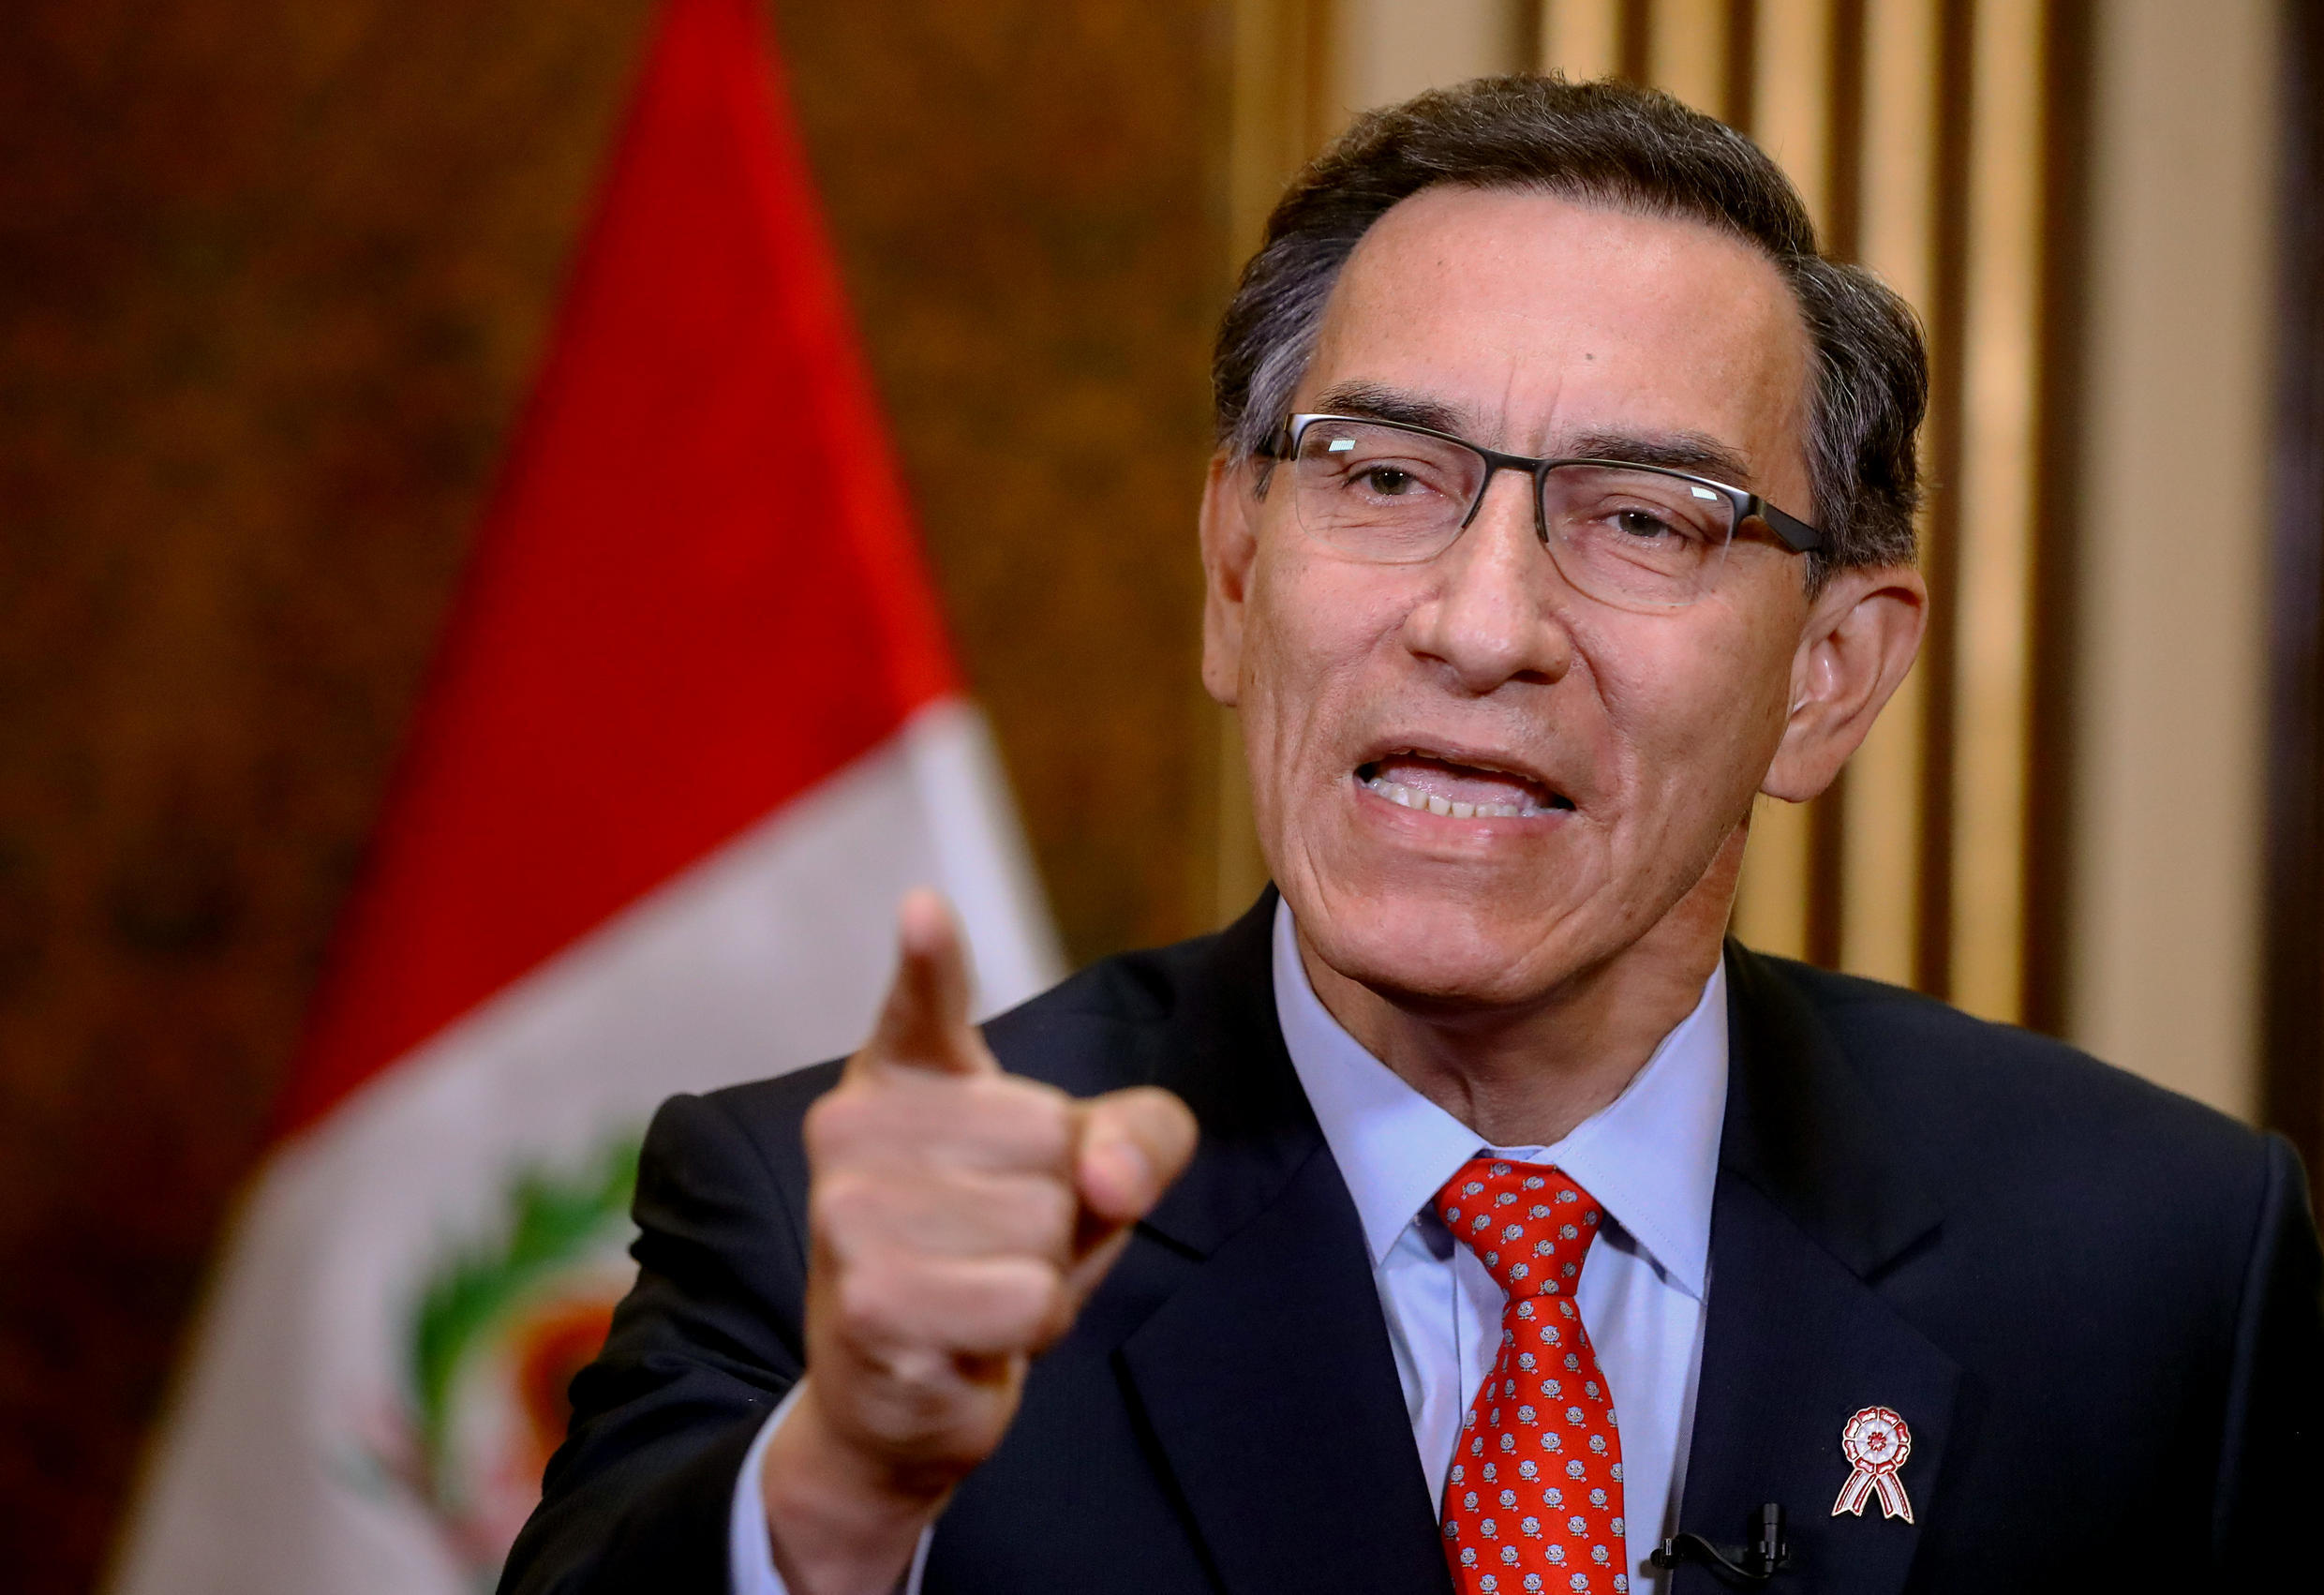 Peru's President Martín Vizcarra addressing the nation on July 5 to announce a referendum will be held in 2021 on eliminating parliamentary immunity